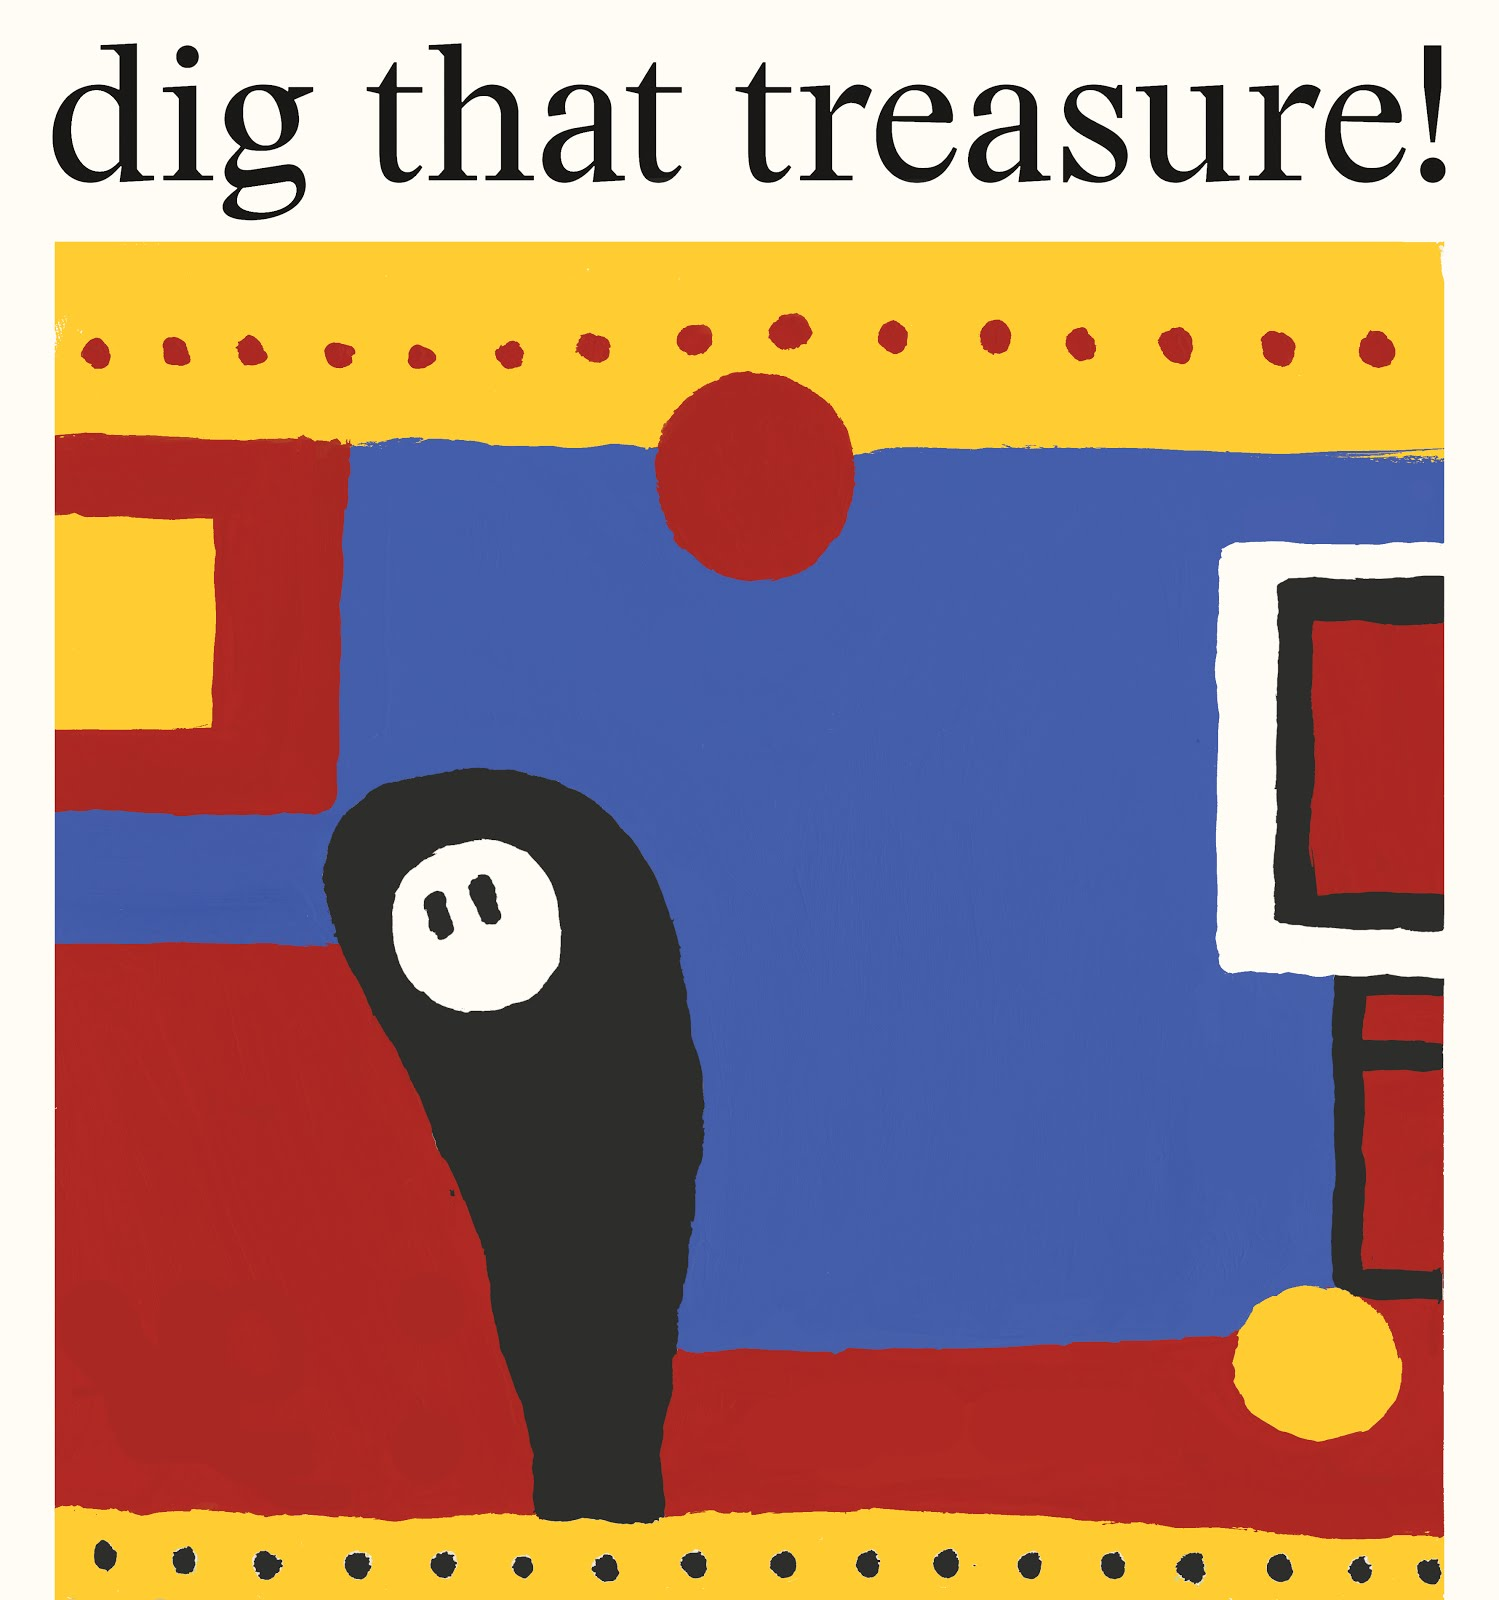 DIG THAT TREASURE! T-SHIRTS